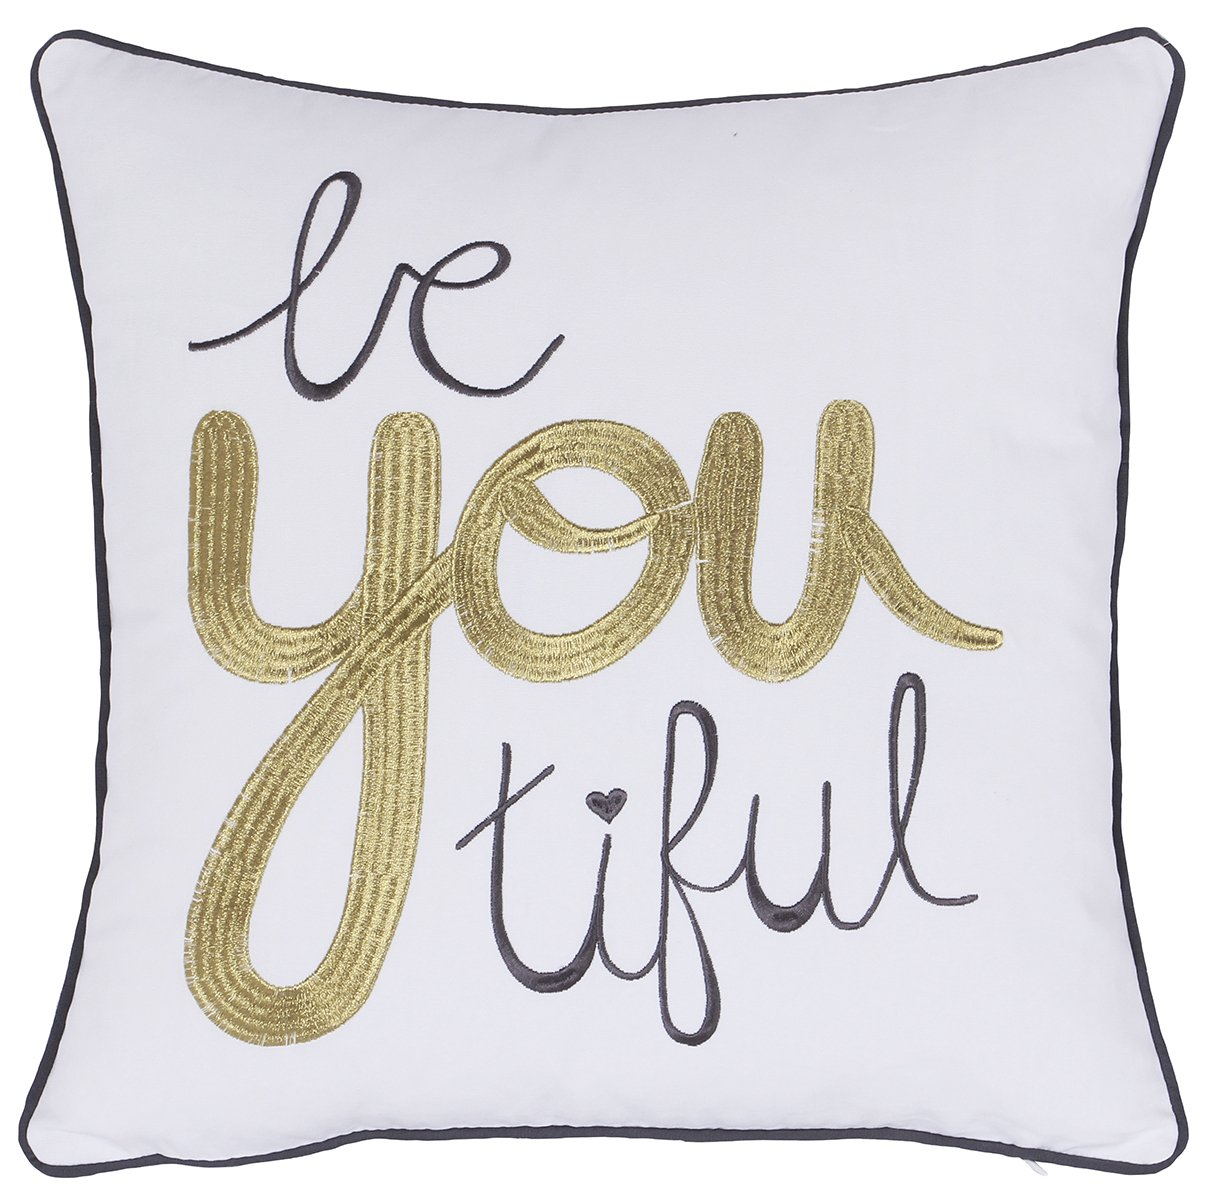 ADecor Pillow Cover Bautiful Girl Pillowcase Embroidered Pillow cover Decorative Pillow Standard Cushion Cover Gift Love Couple Teen Inspiration quote pillow P327 (18X18, Beautiful(Ivory))